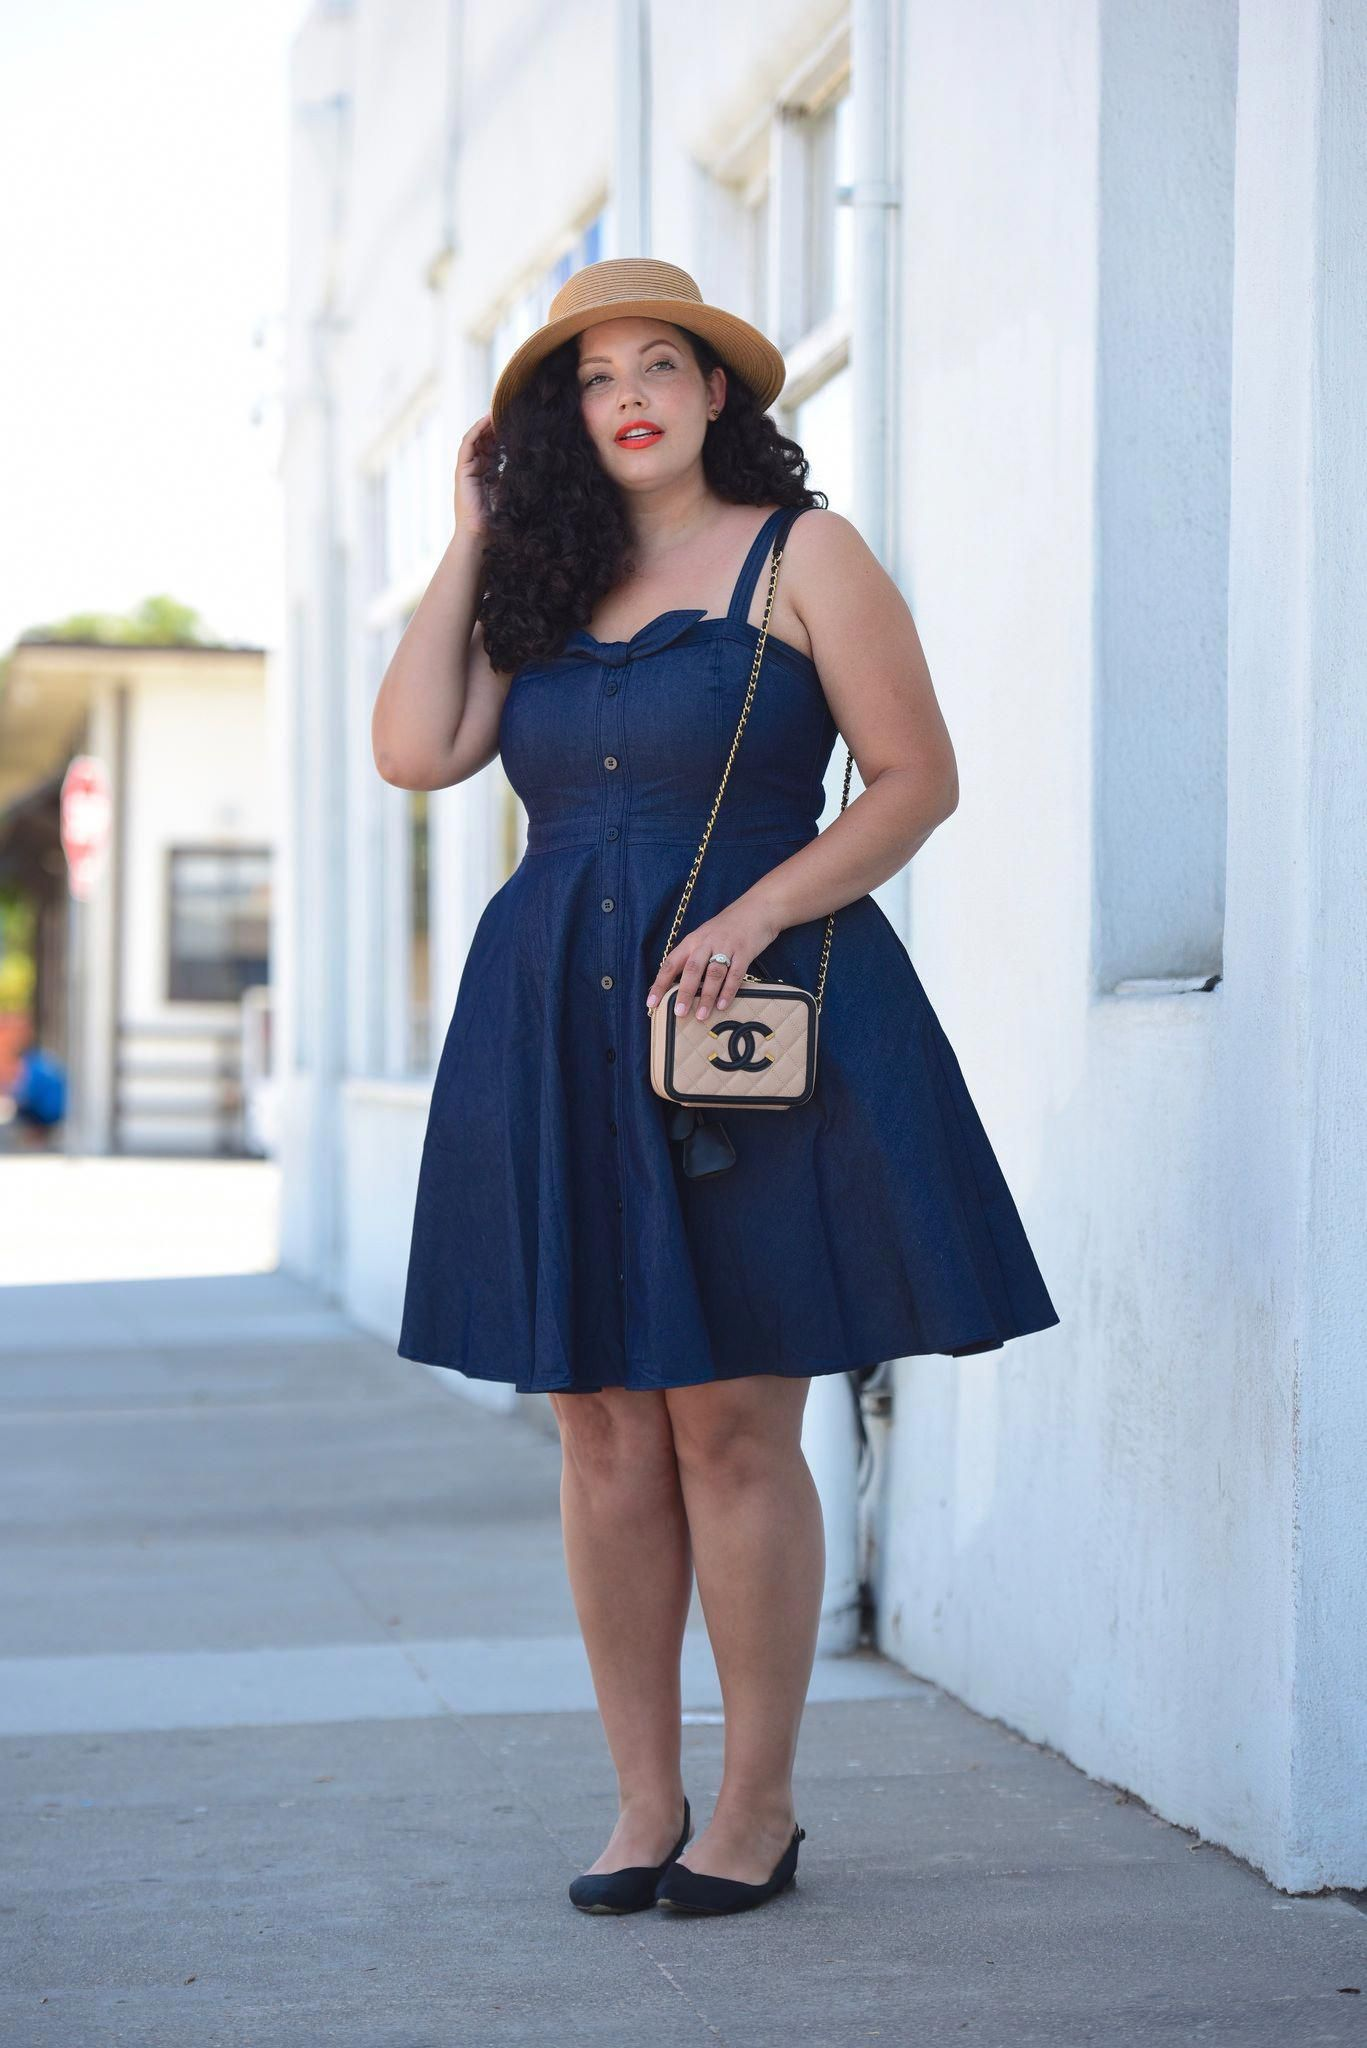 Trendy plus size fashion for summer